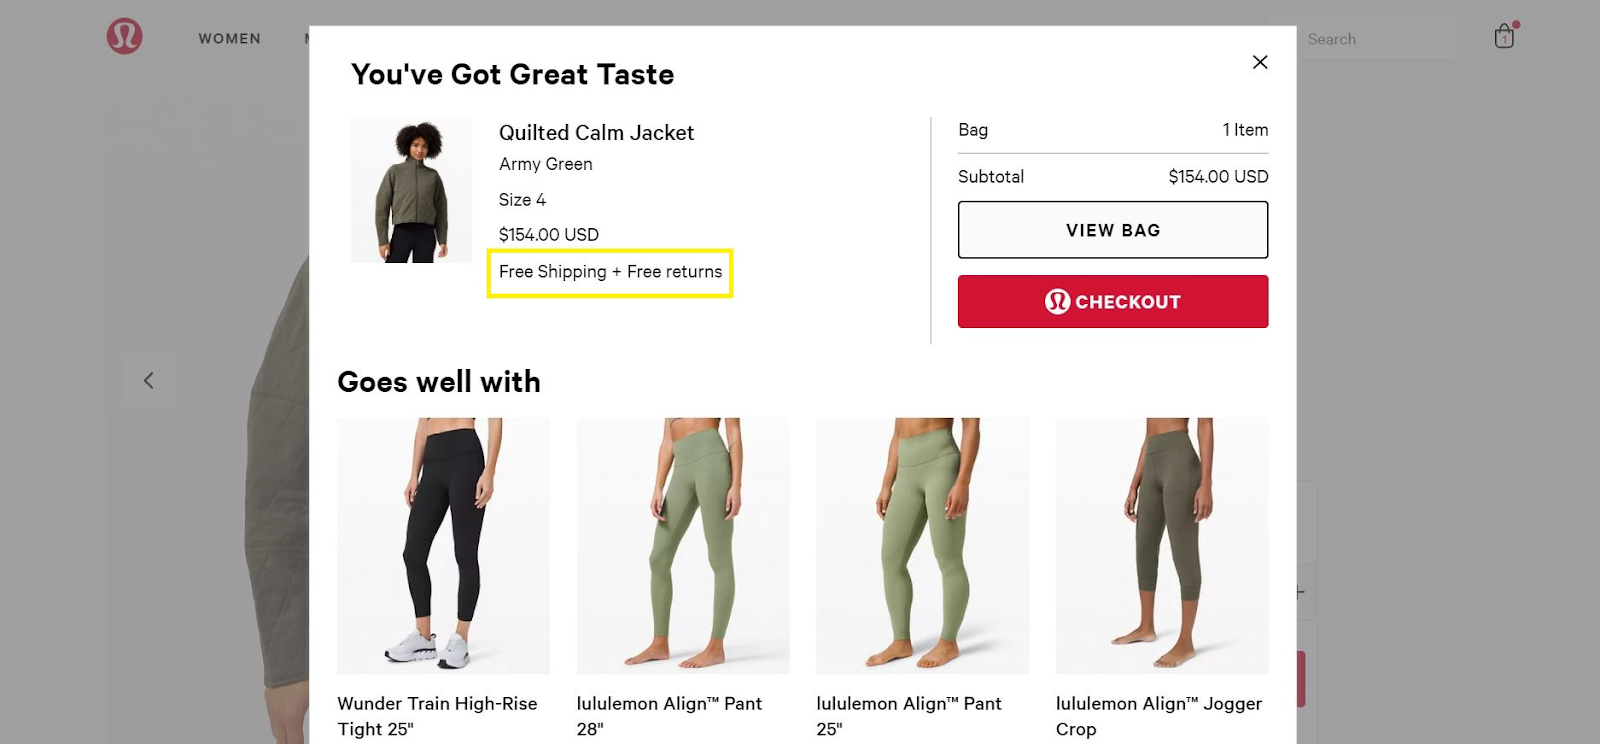 Lululemon's clear offer of free shipping.